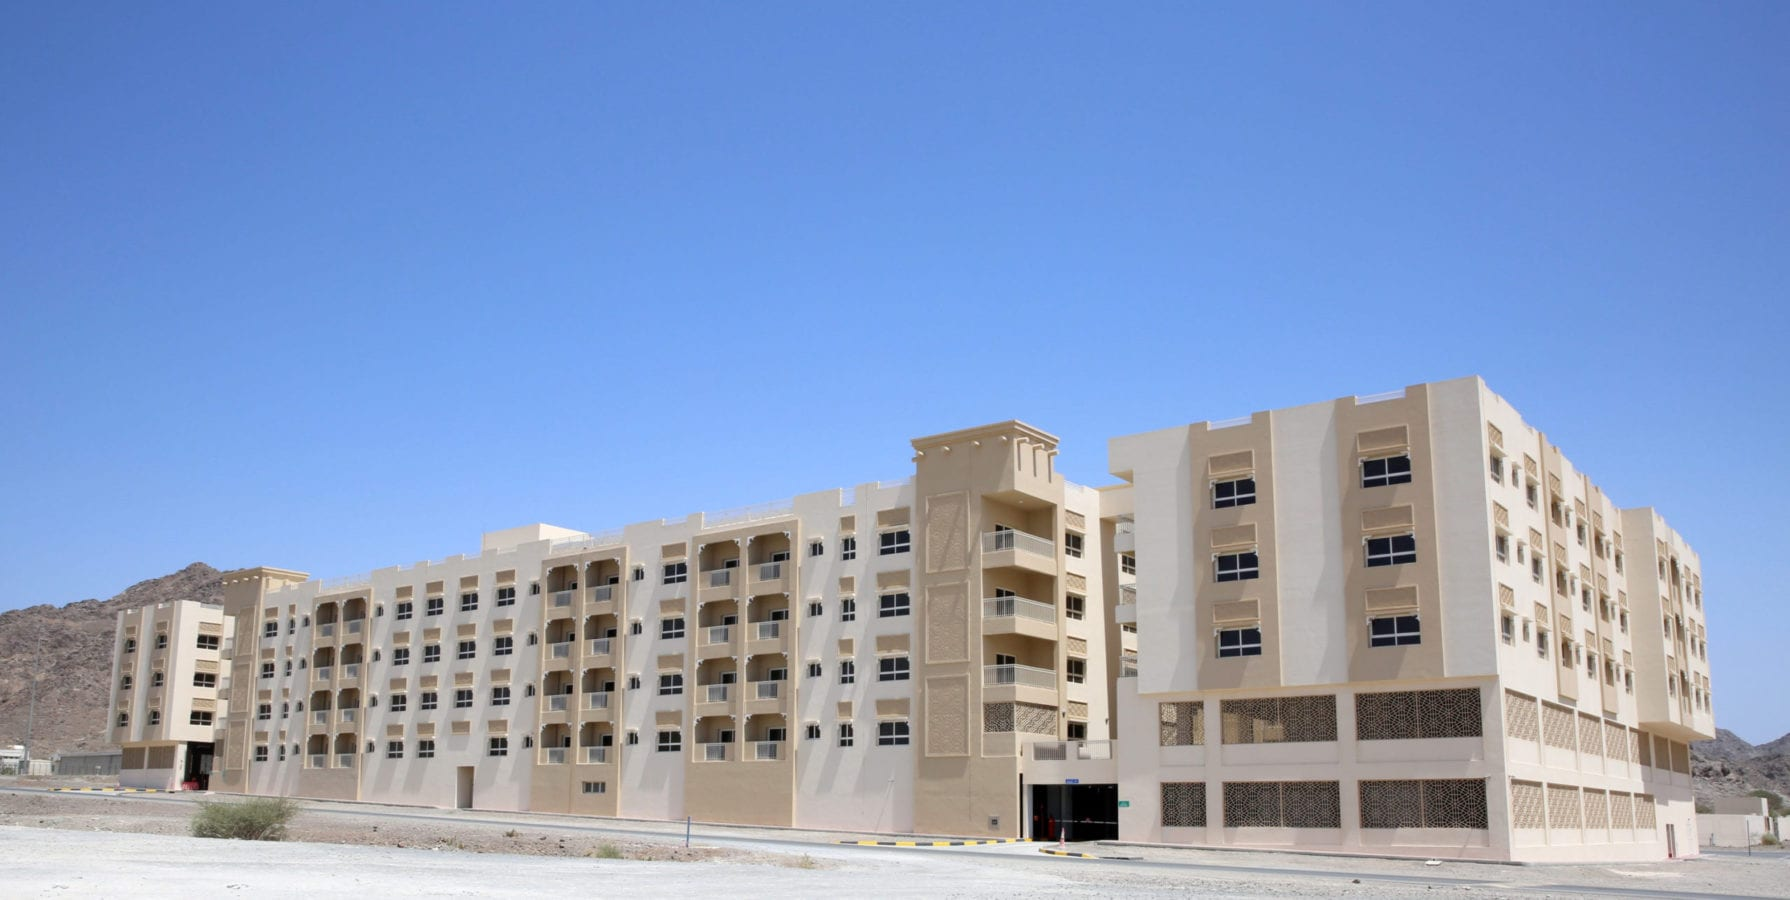 Housing Complex For Municipality Staff At Hatta 2 1 scaled